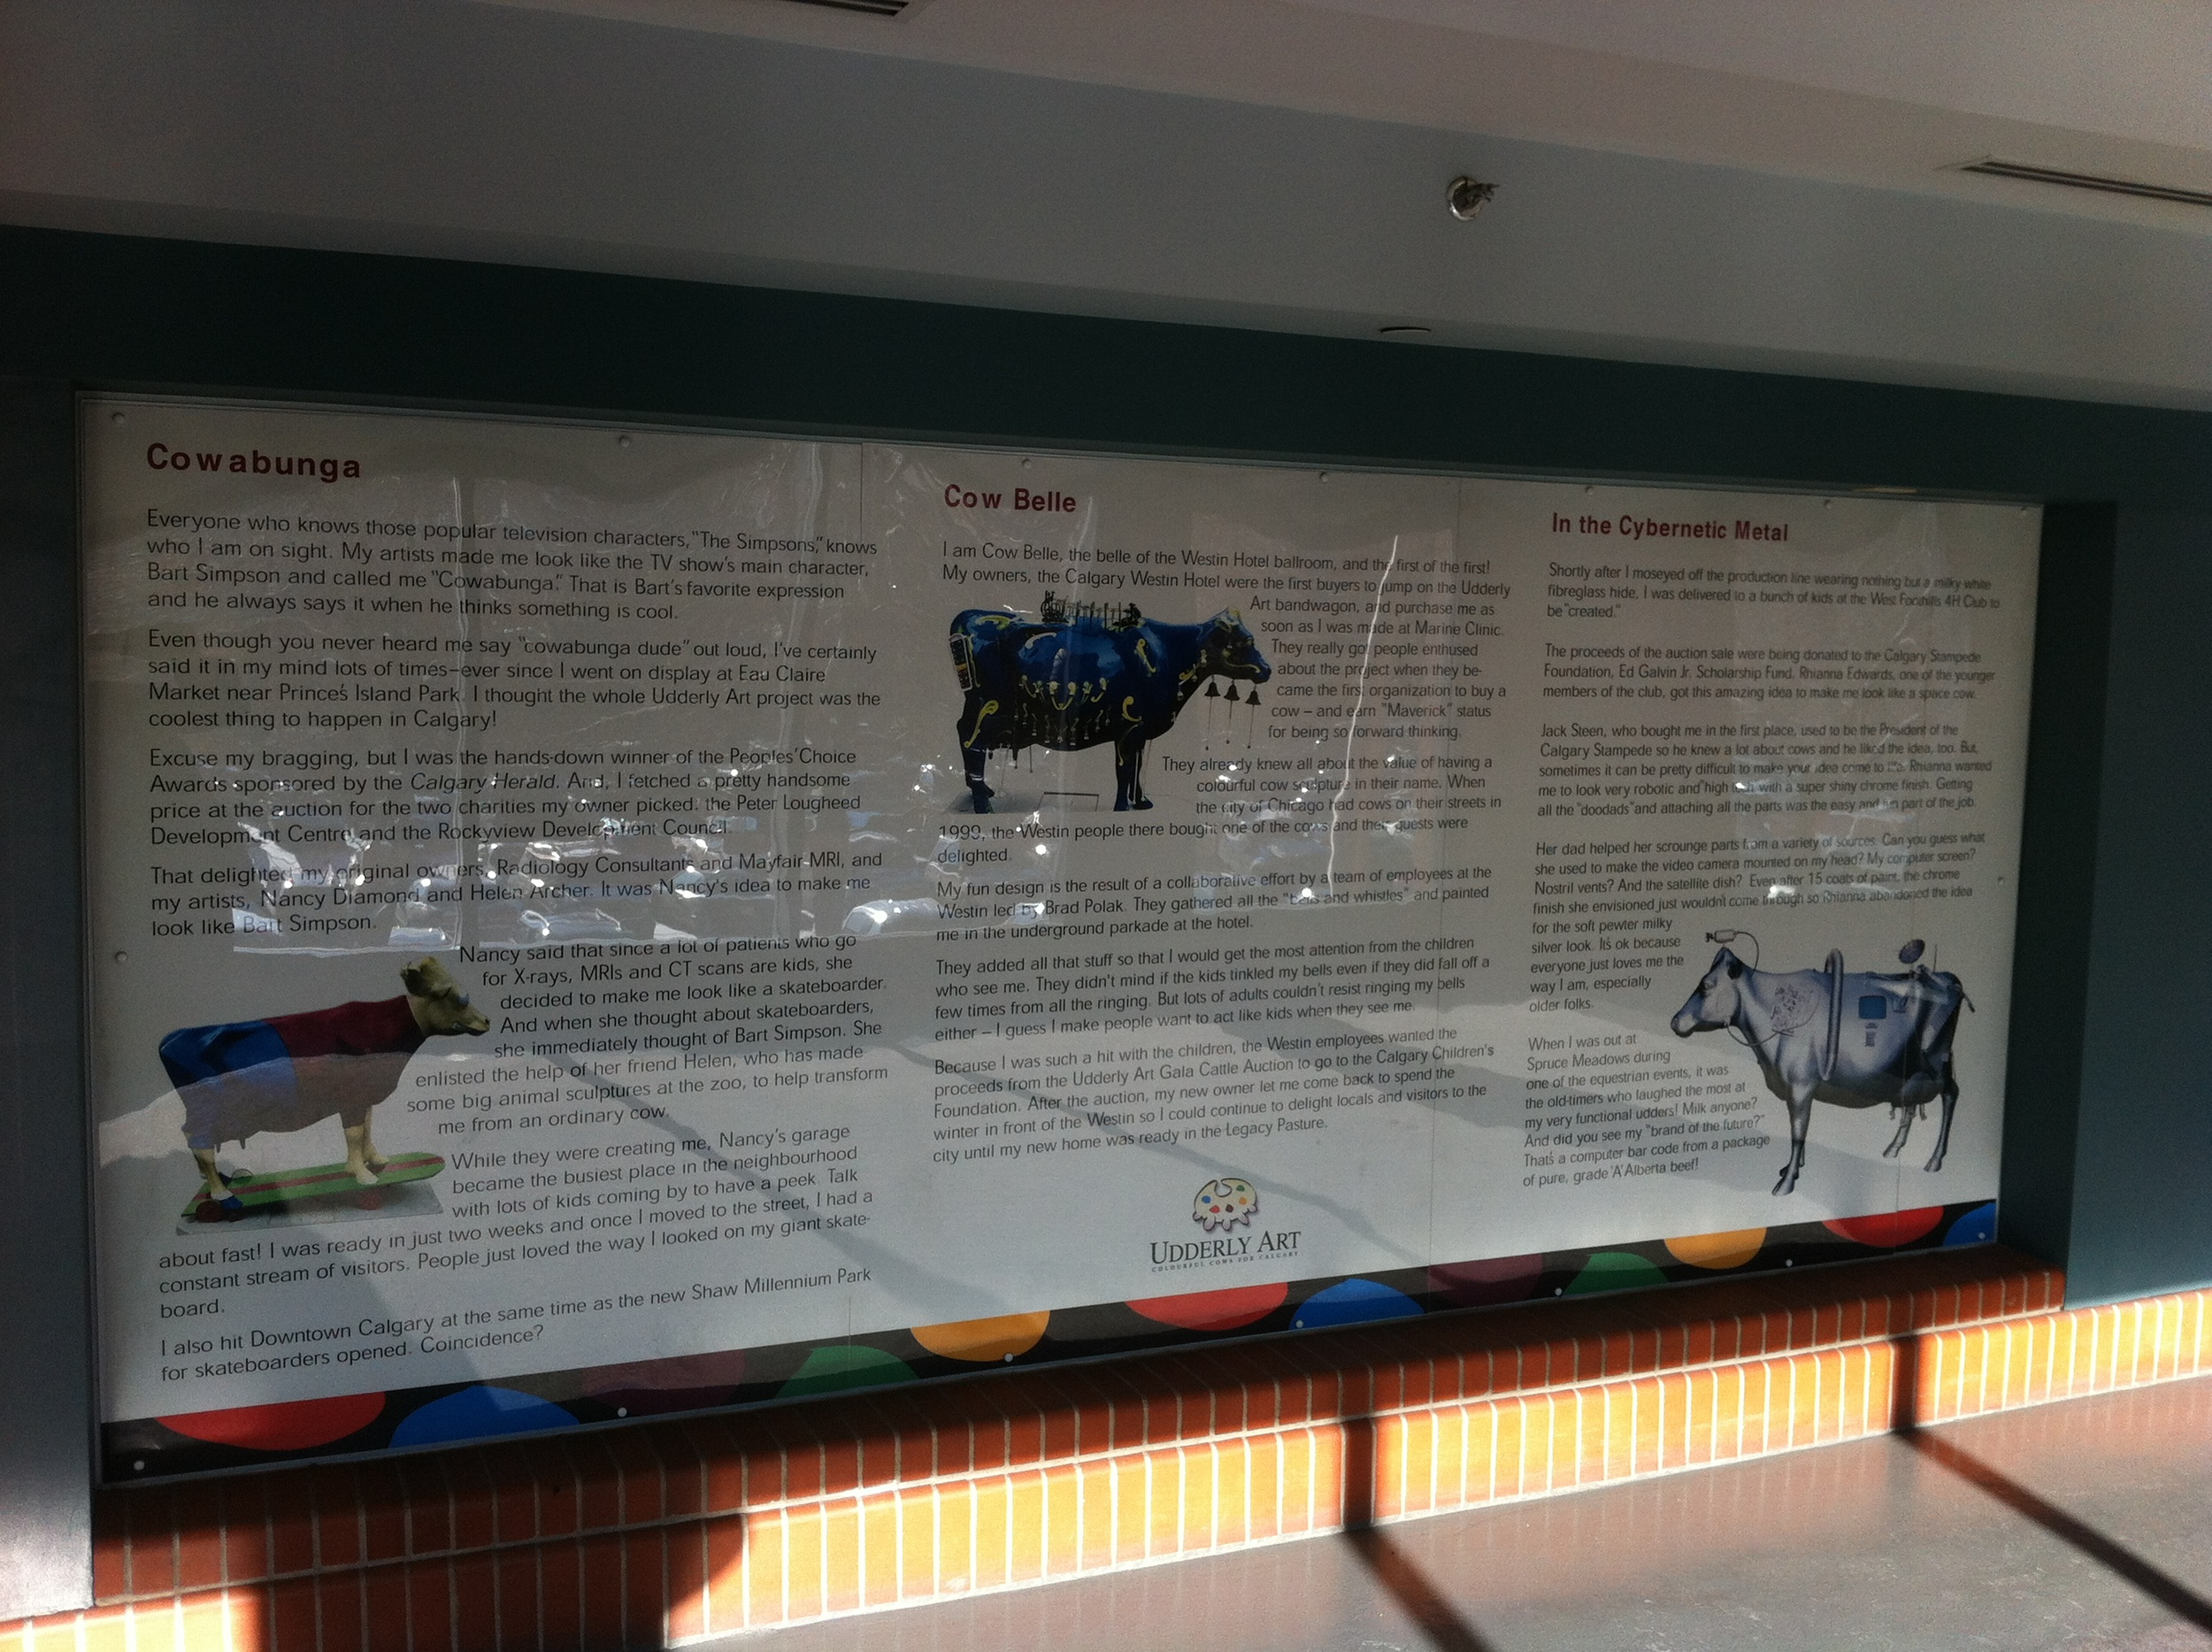 There are several huge information panels that explain the story behind some of the more popular bovine beauties.